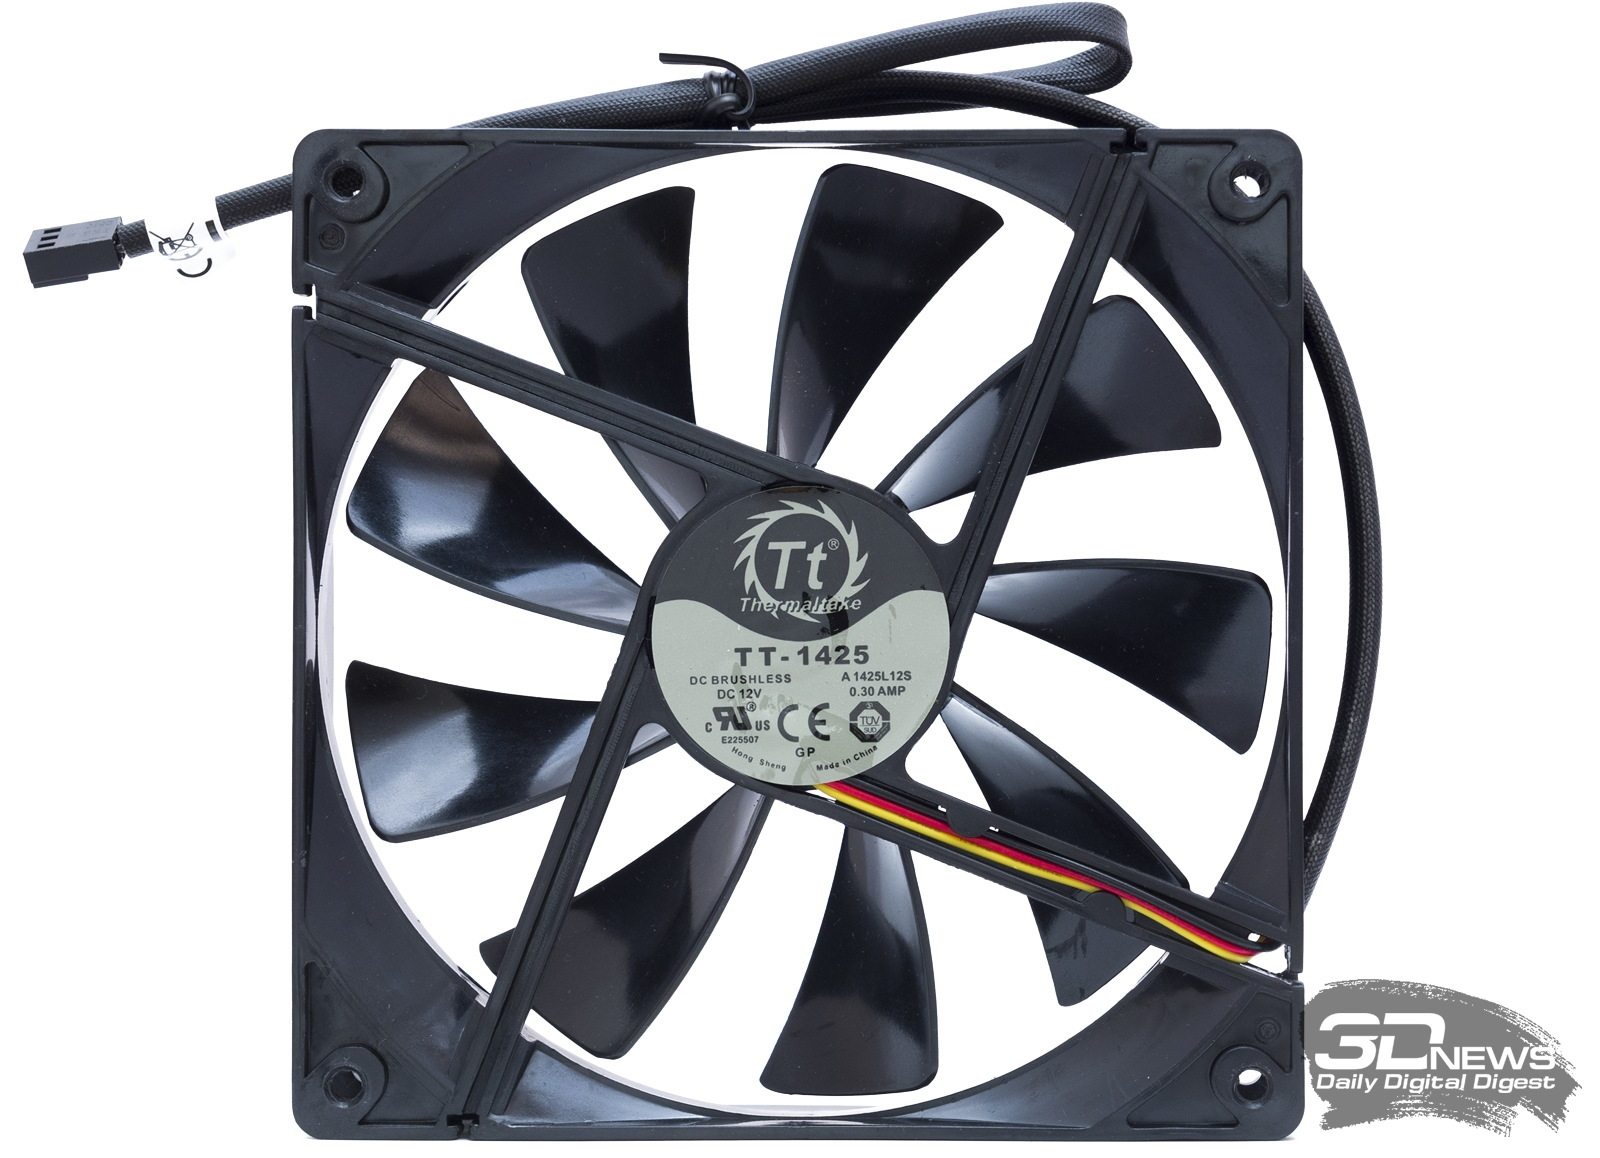 Thermaltake TT-1425 A1425L12S Case Fan. Thermaltake meets the current and  future demands of high-performance, power embedded computing, making it  ideal for ...